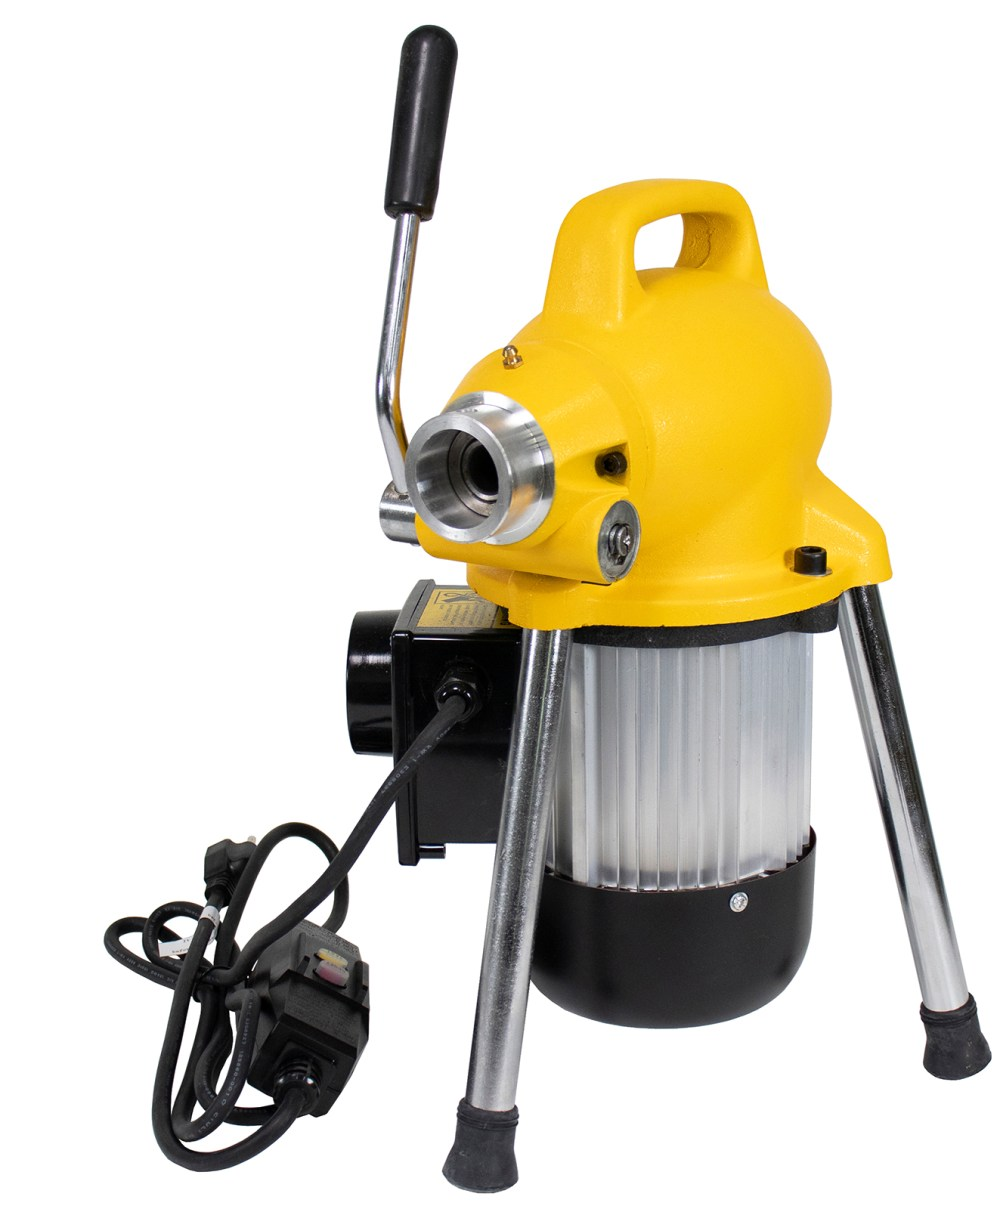 medium resolution of steel dragon tools k50 drain cleaning machine fits ridgid snake sewer c8 cable 2 2 of 12